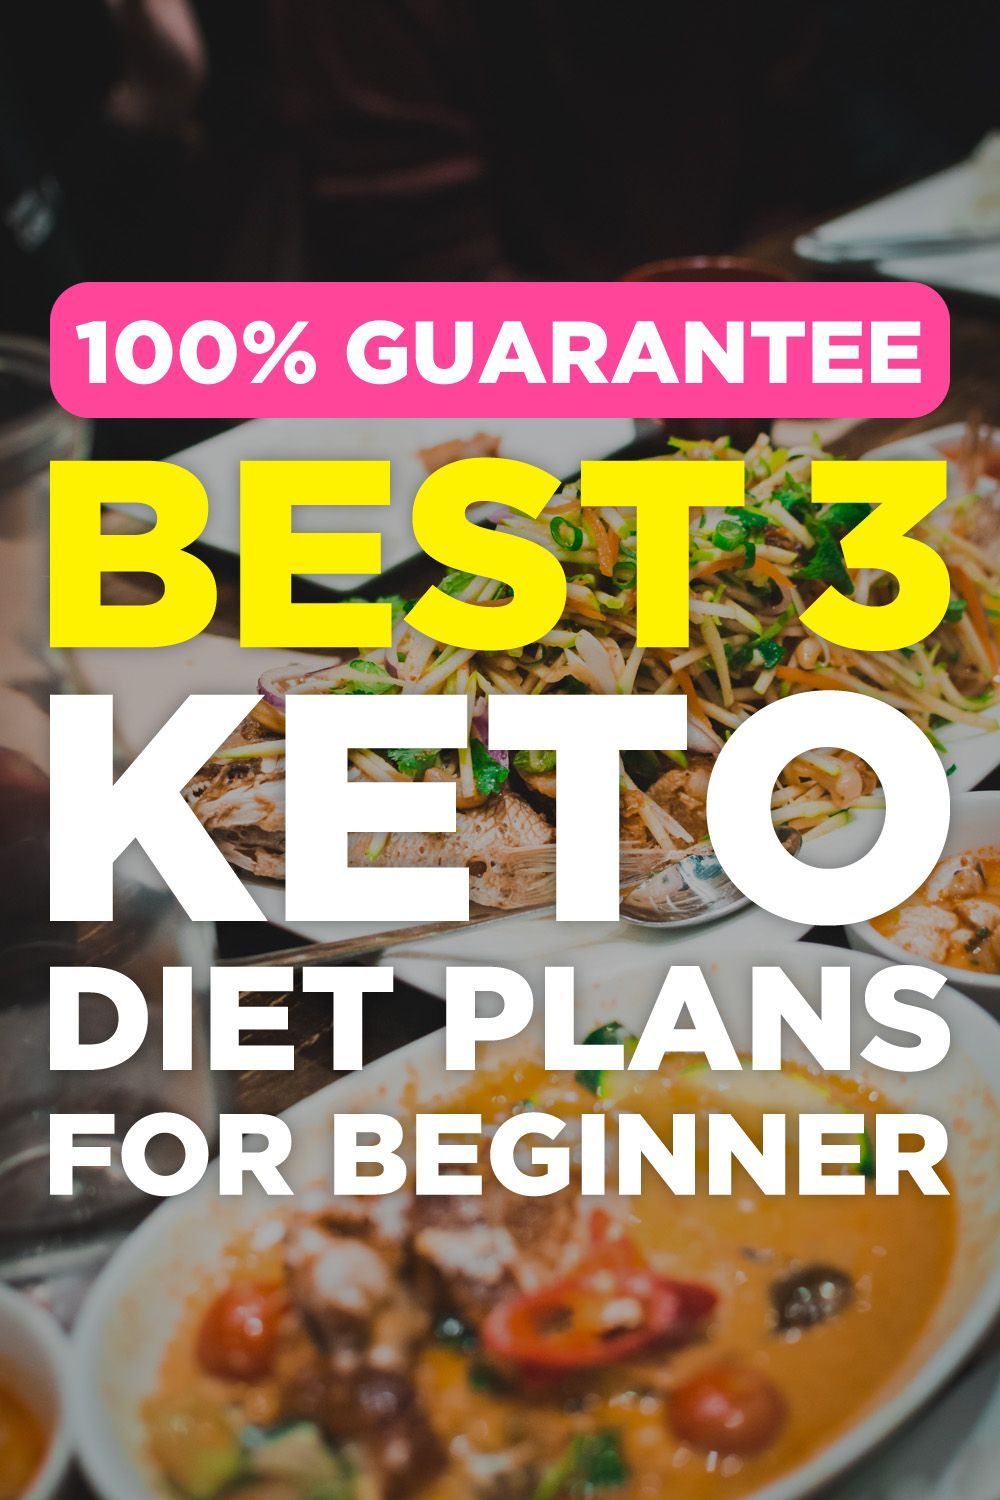 Best 3 Keto Diet Plans, keto diet vs atkins, 	specific carbohydrate diet recipes, 	low fat meal reci #myfitnesspalrecipes keto diet vs atkins, 	specific carbohydrate diet recipes, 	low fat meal recipes,  lose weight for good, 	healthy diets to lose weight, 	low fat cheeses,  foods and recipes, 	losing stomach fat workout, 	keto diet getting started,  diet snacks losing weight, 	keto diet basics, 	low carb diet side effects,  keto diet milk, 	keto diet 101, 	5 2 diet recipes,  myfitnesspal recipe #myfitnesspalrecipes